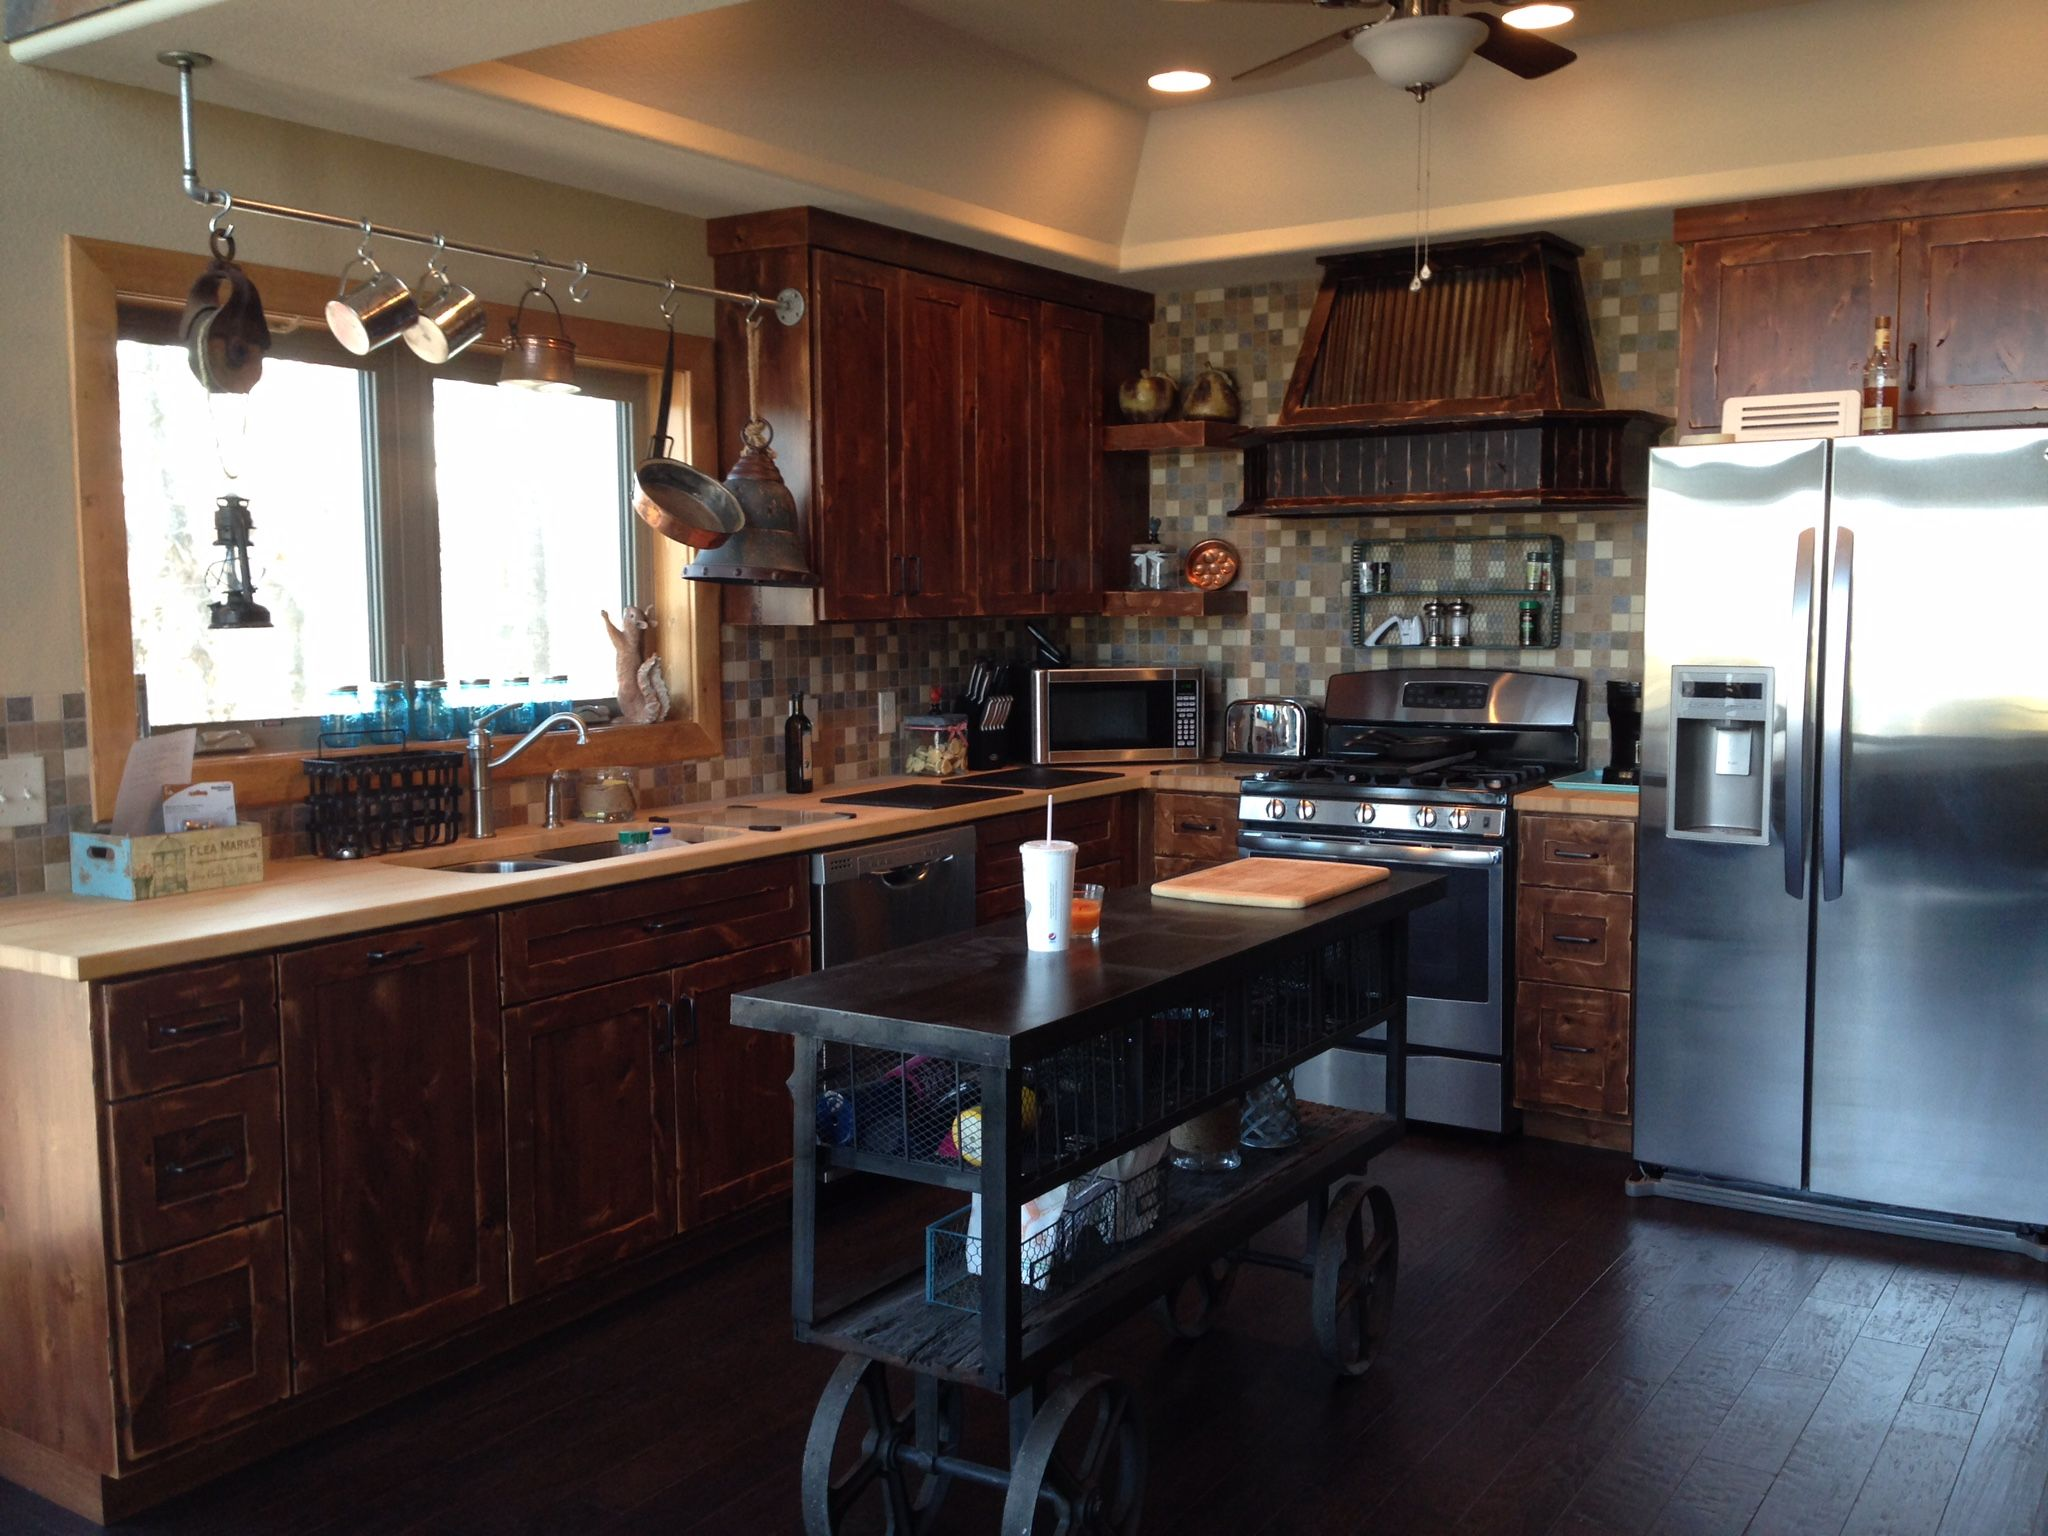 Rustic kitchen cabinets with a butcher block counter. Trolley cart on